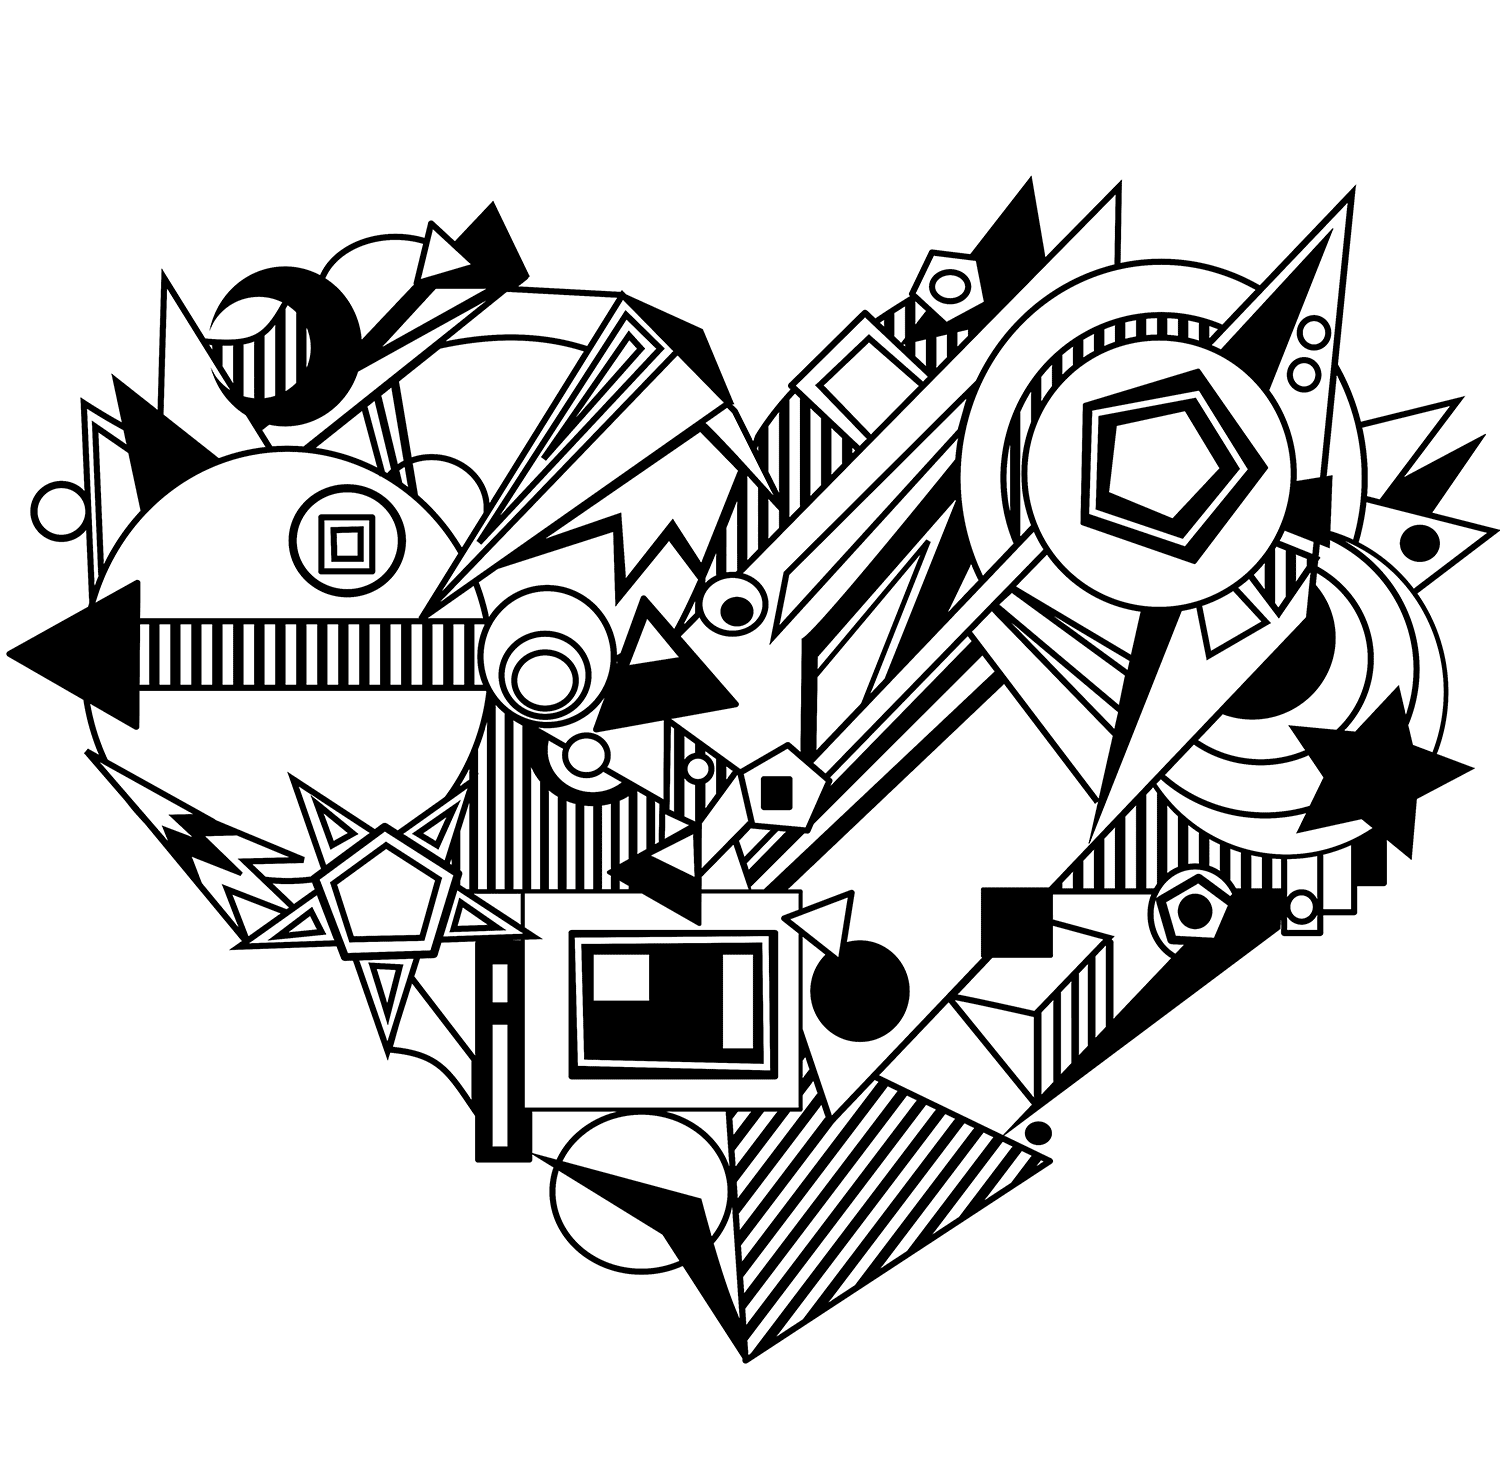 coloring pages for adults heart hearts coloring pages for adults best coloring pages for coloring for adults pages heart